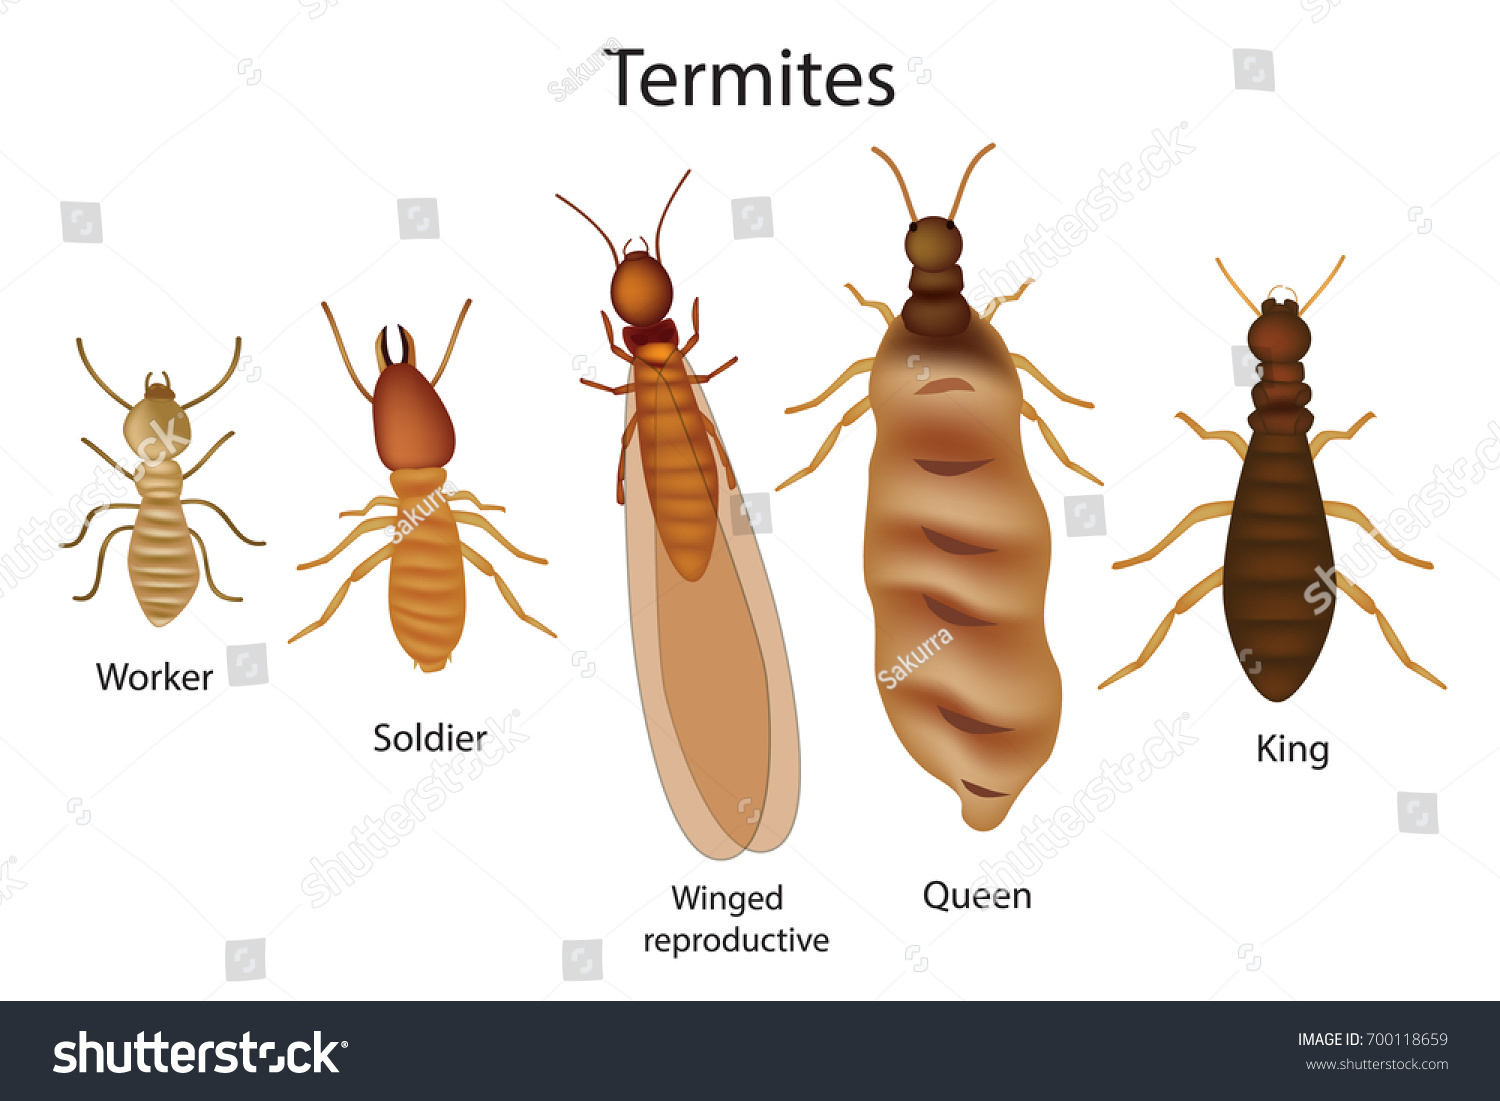 Caste System Termites Stock Vector (Royalty Free) 700118659 ...